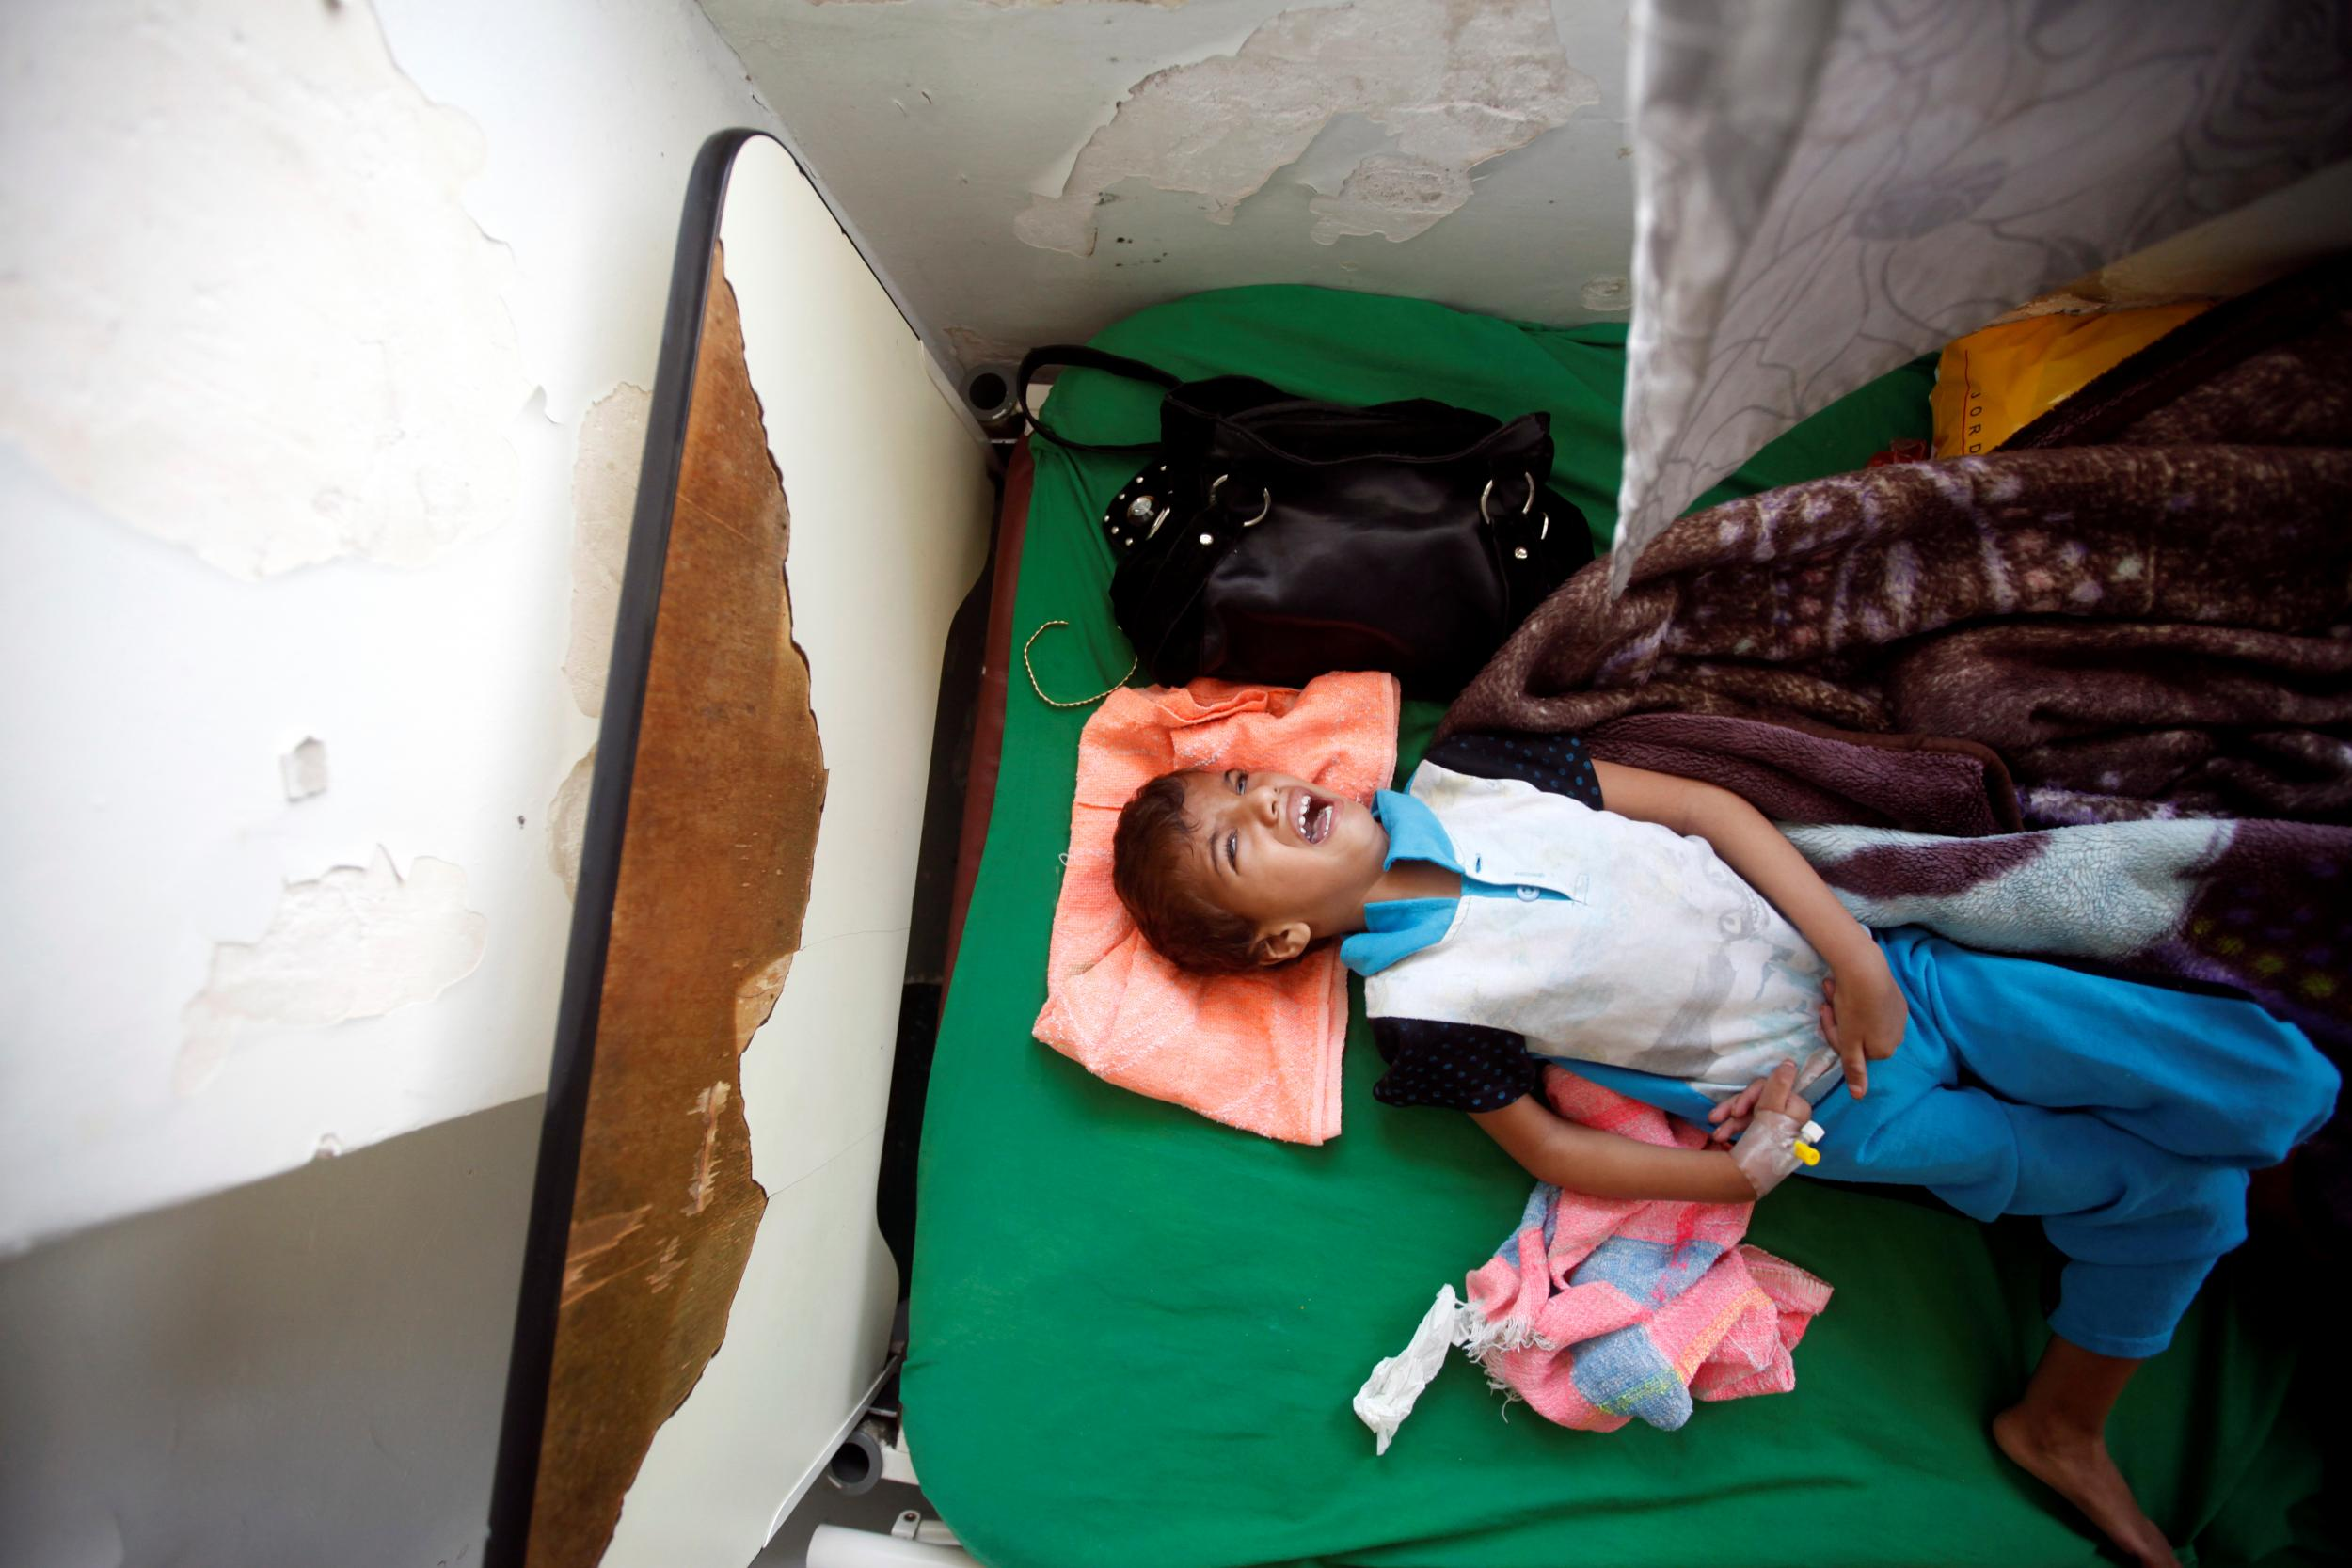 More people are dying in Yemen from a Saudi-led airport blockade than from actual air strikes, NGOs say